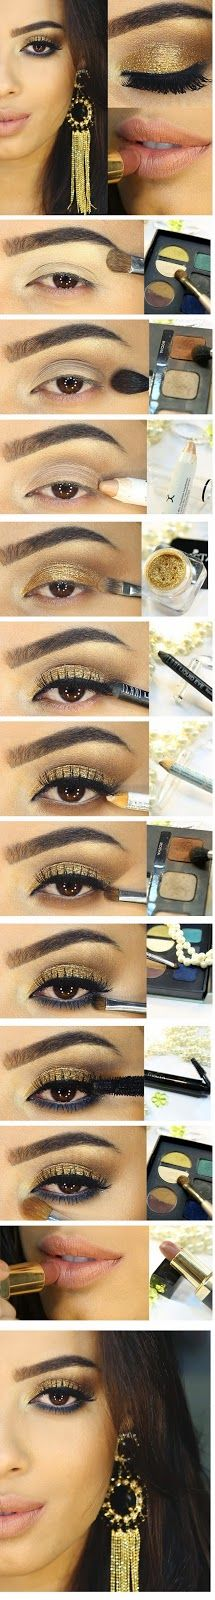 Brown Smokey Eye with Gold & Blue Makeup Tutorials # Step by Step / Best LoLus Makeup Fashion